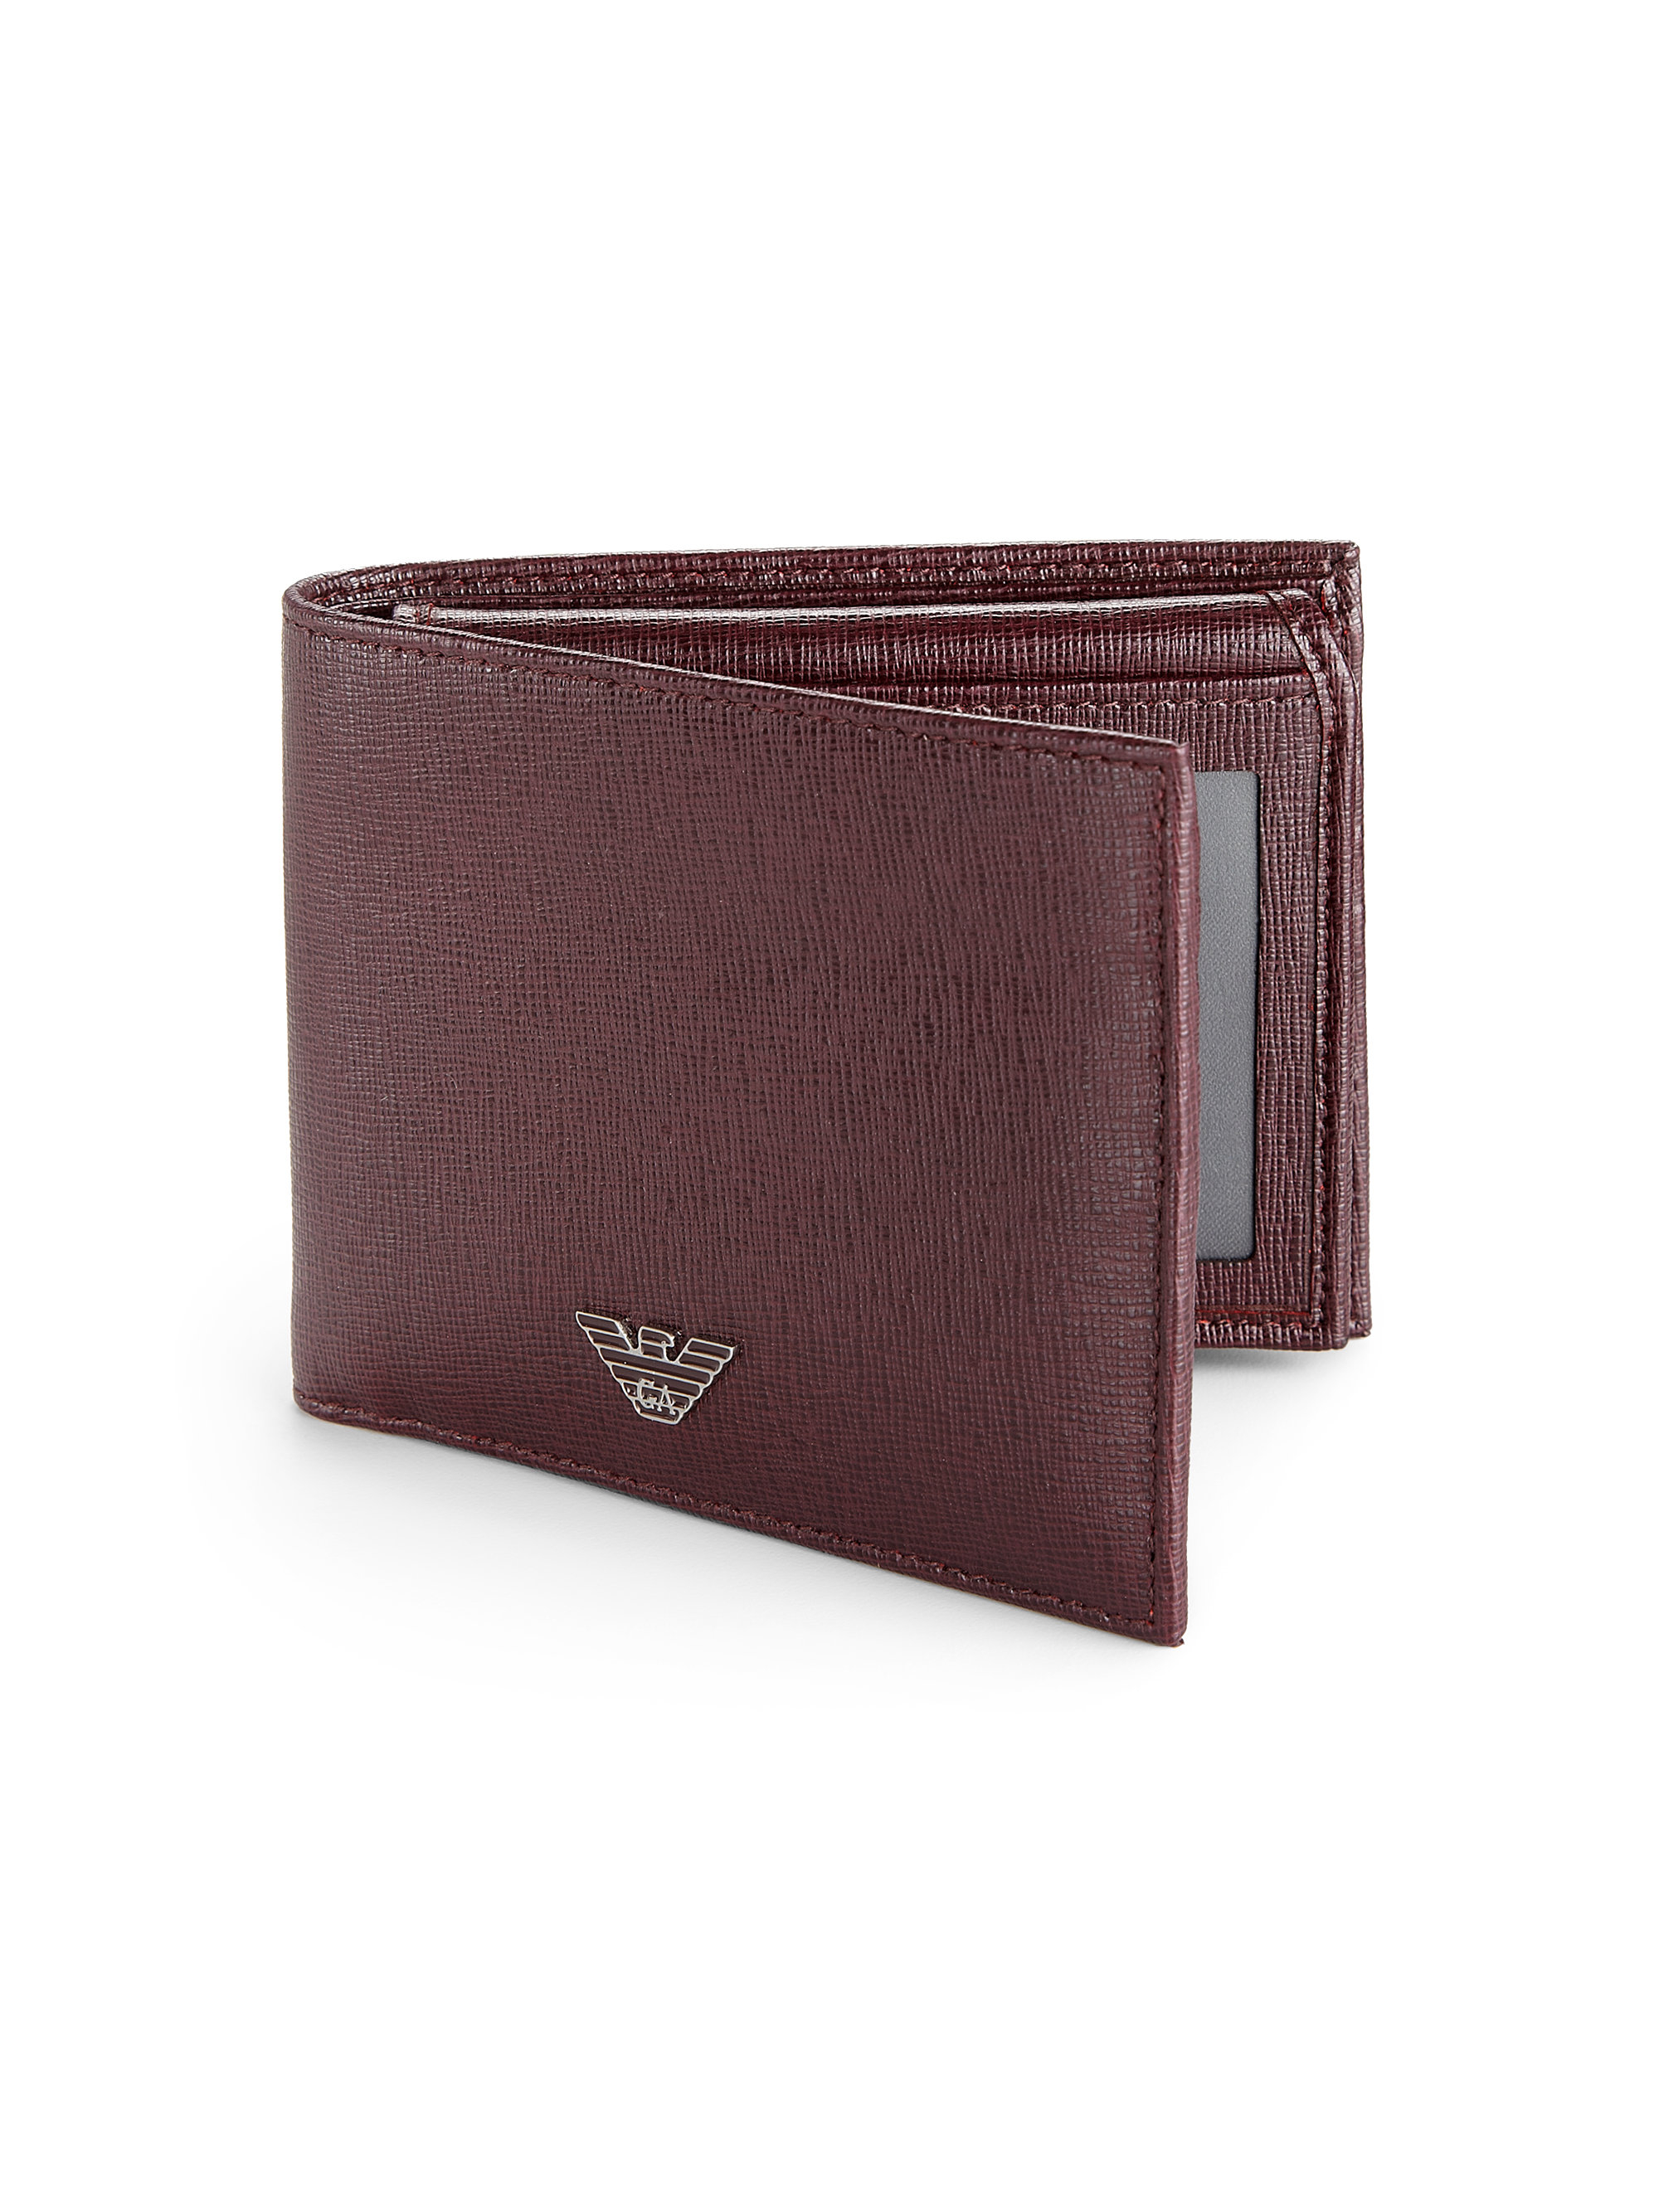 cac3a27bf9 Lyst - Emporio Armani Leather Id Wallet in Red for Men